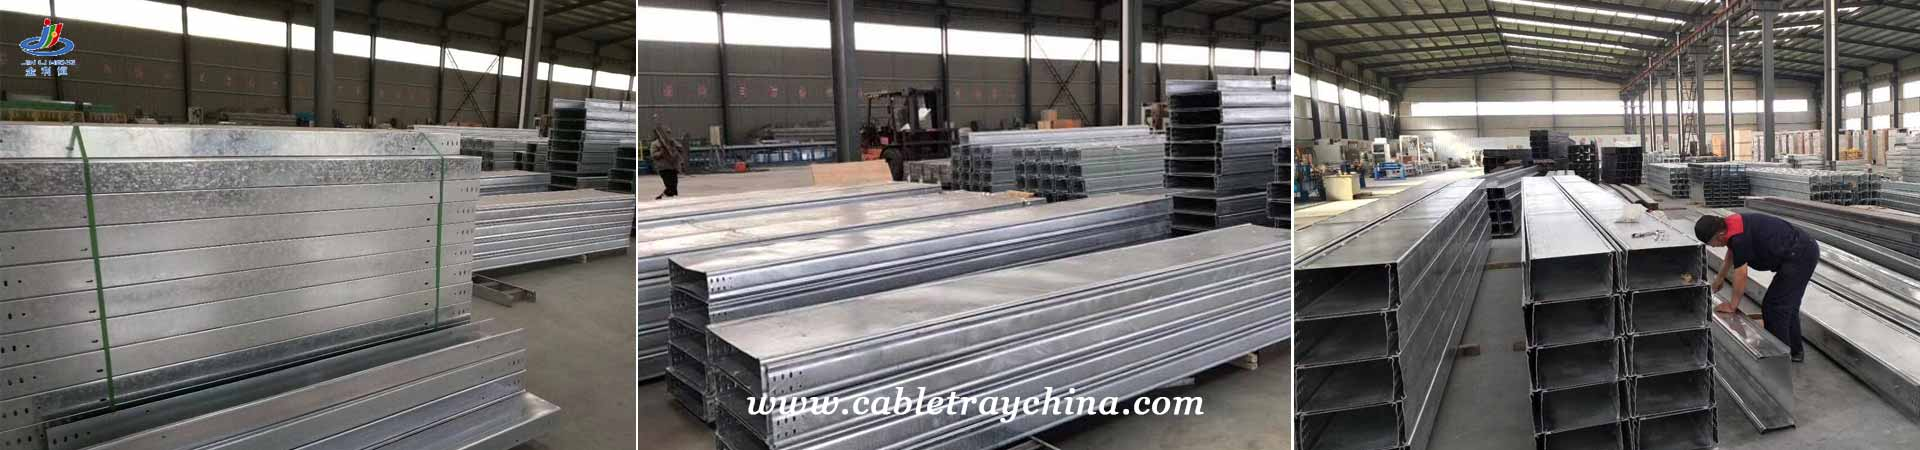 Galvanised Trunking manufacturer